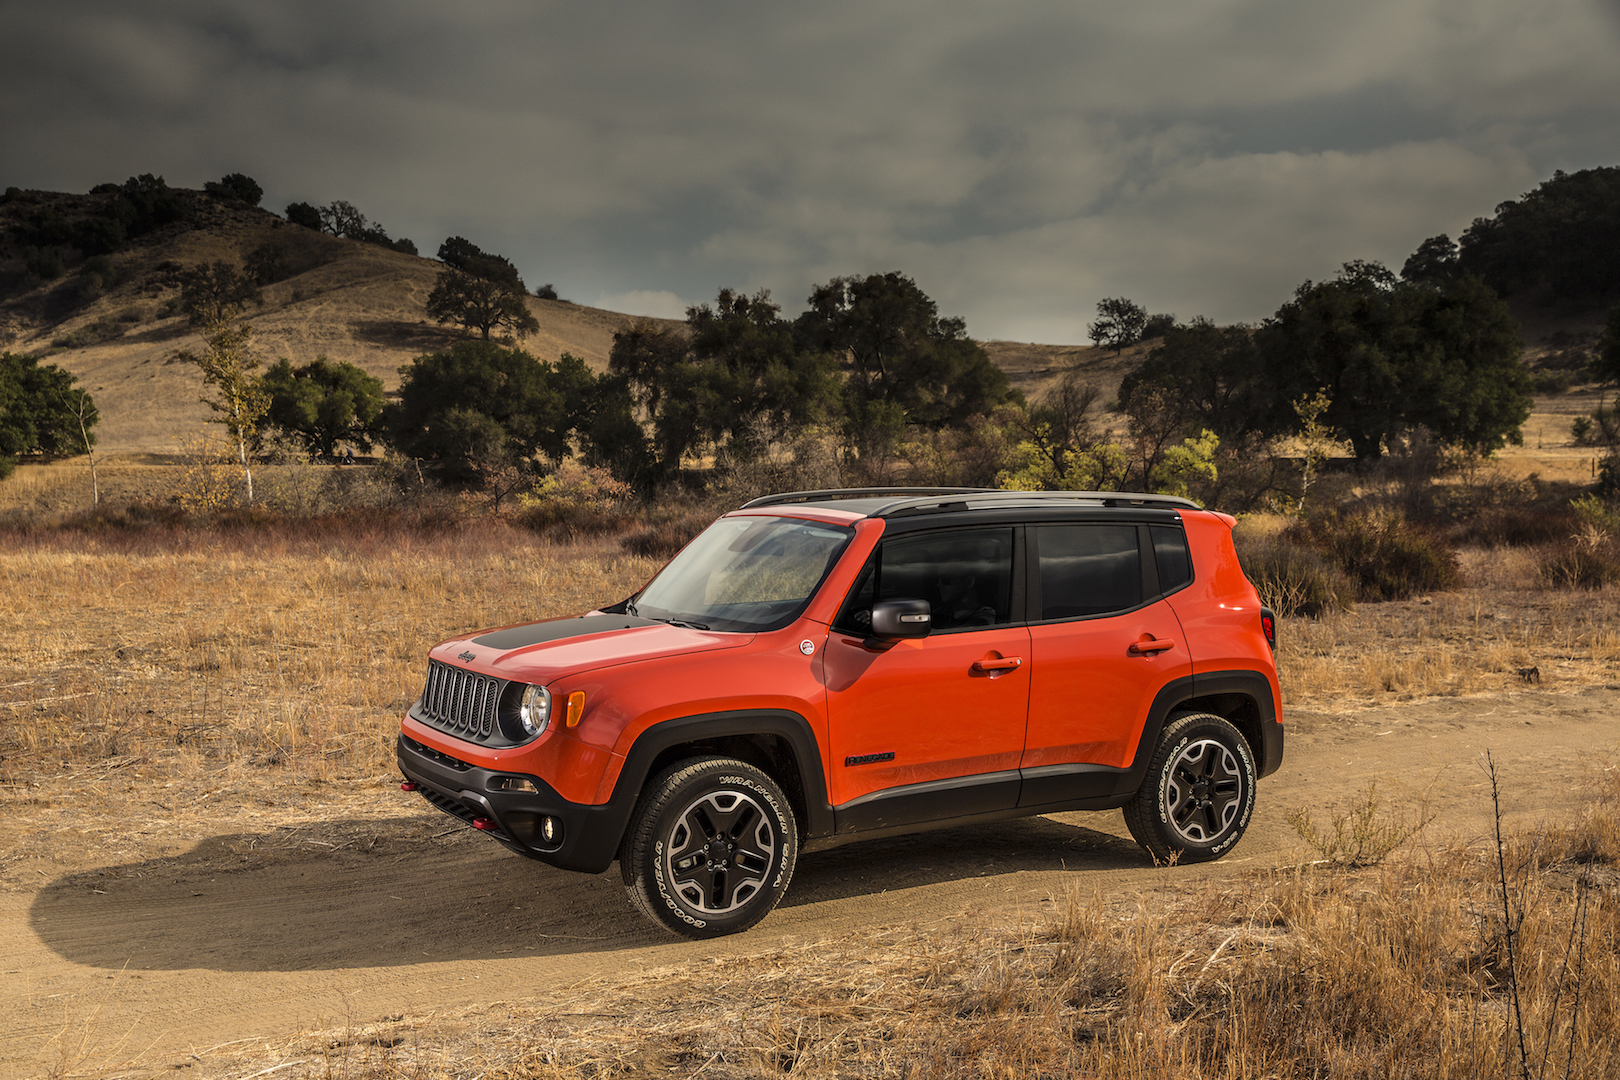 Jeep Renegade Trailhawk For Sale >> 2016-jeep-renegade_100524709_h.jpg